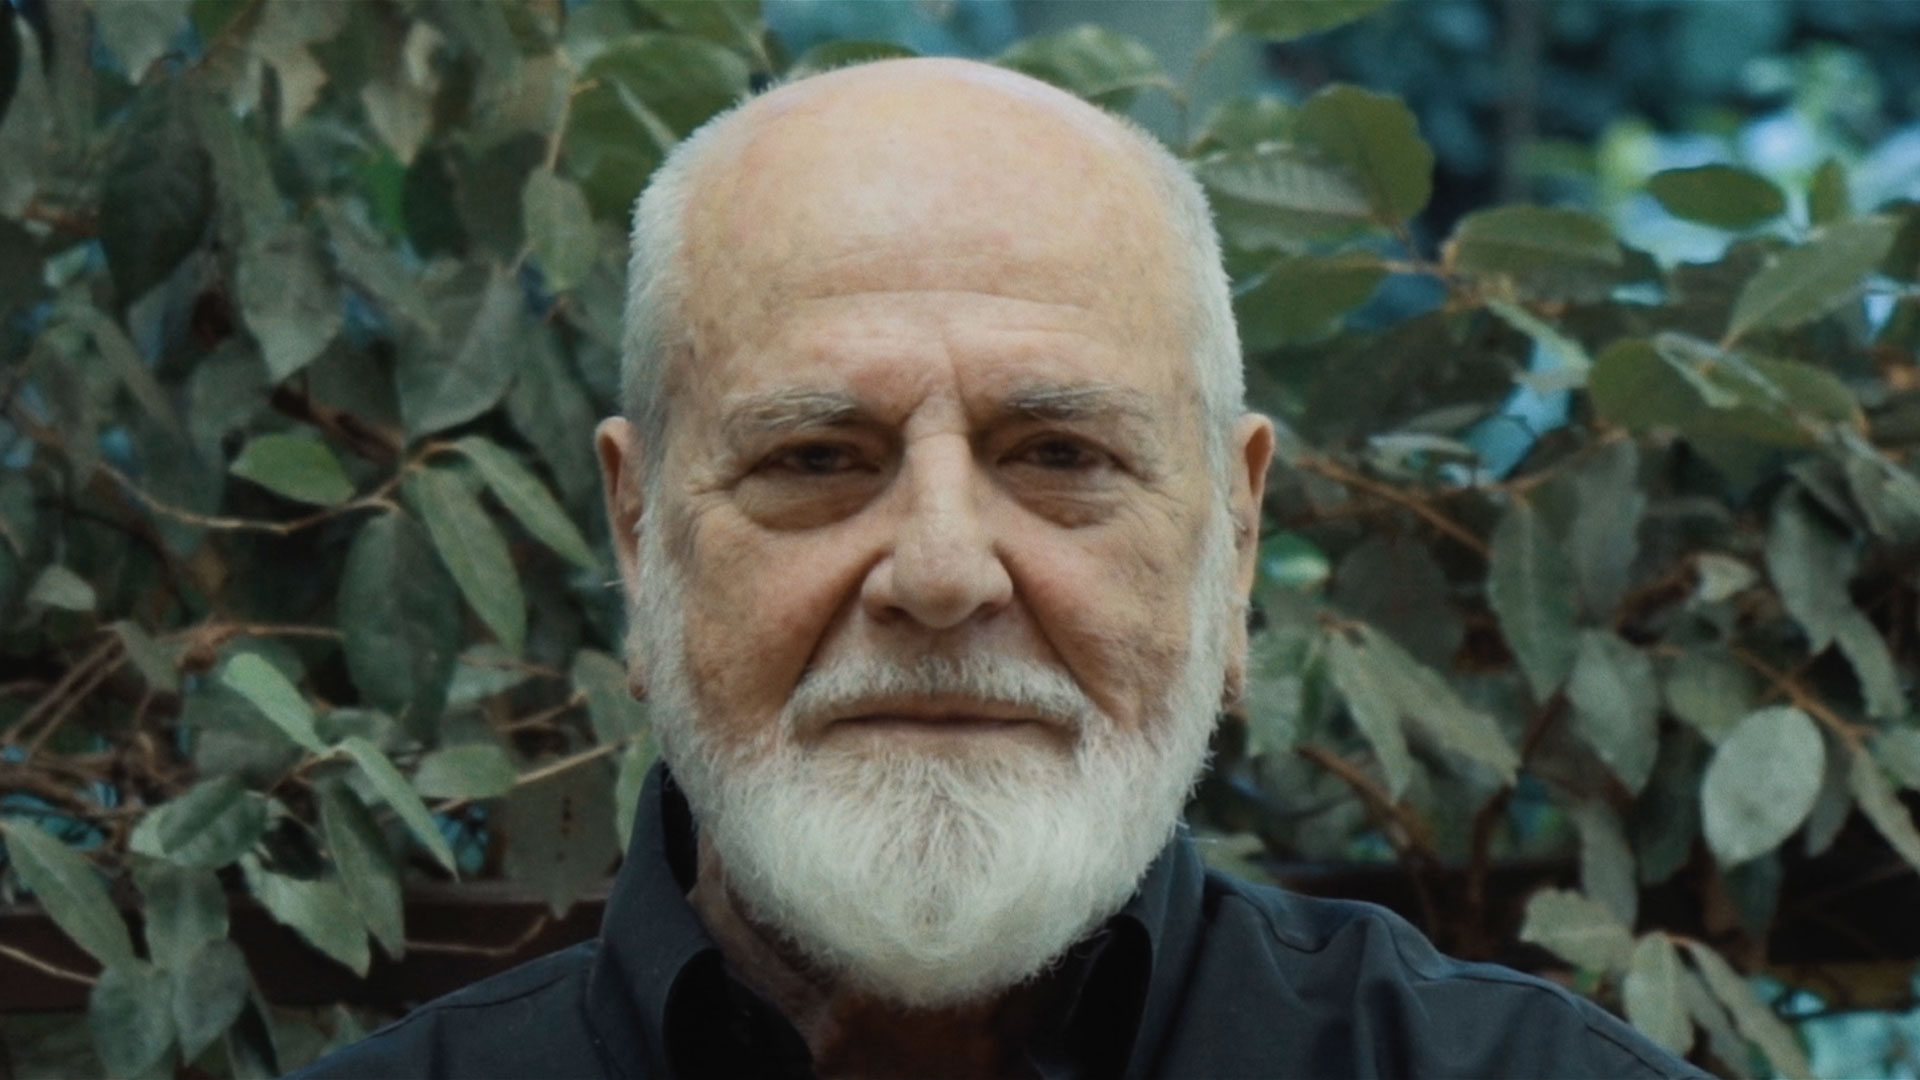 Michelangelo Pistoletto x Recontemporary